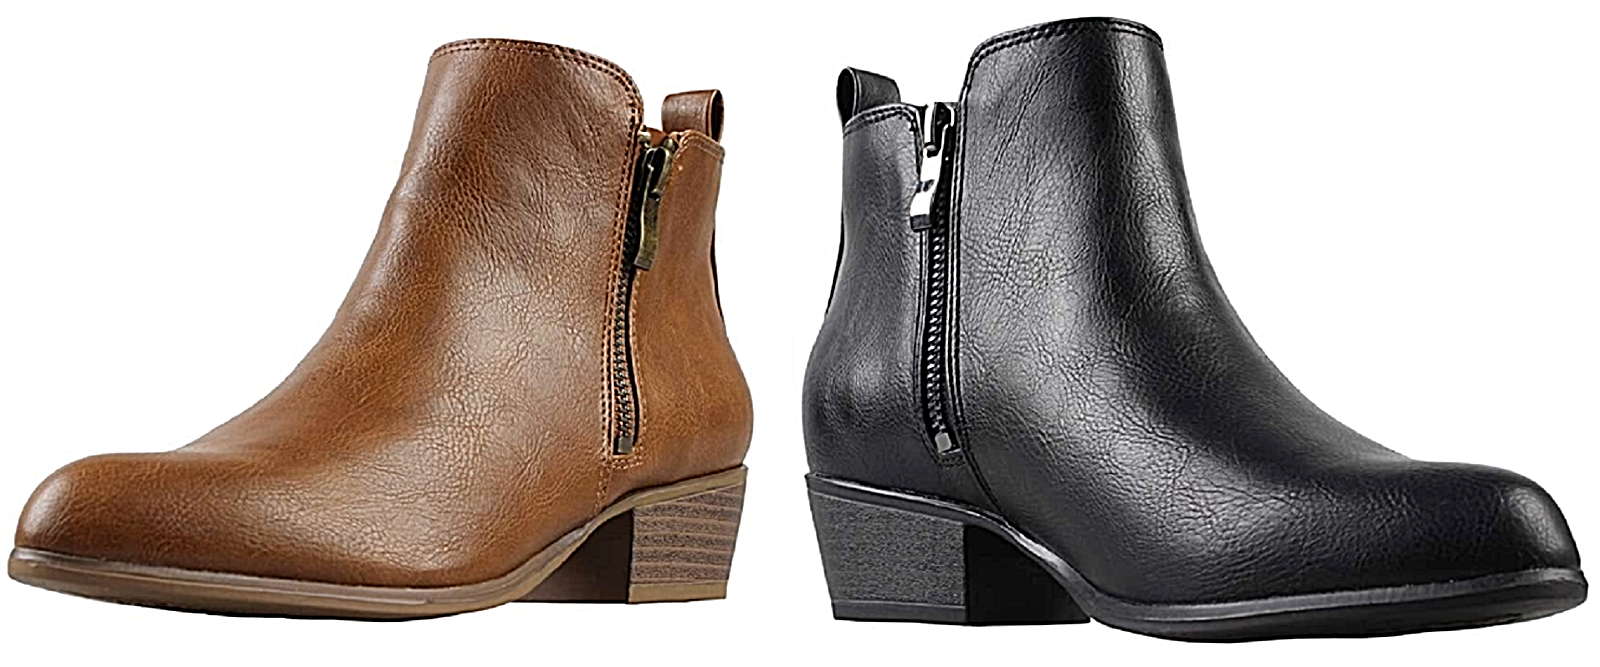 Womens Synthetic Leather Ankle Boots Zipper Closure Stacked Block Heel DURABLE Boots